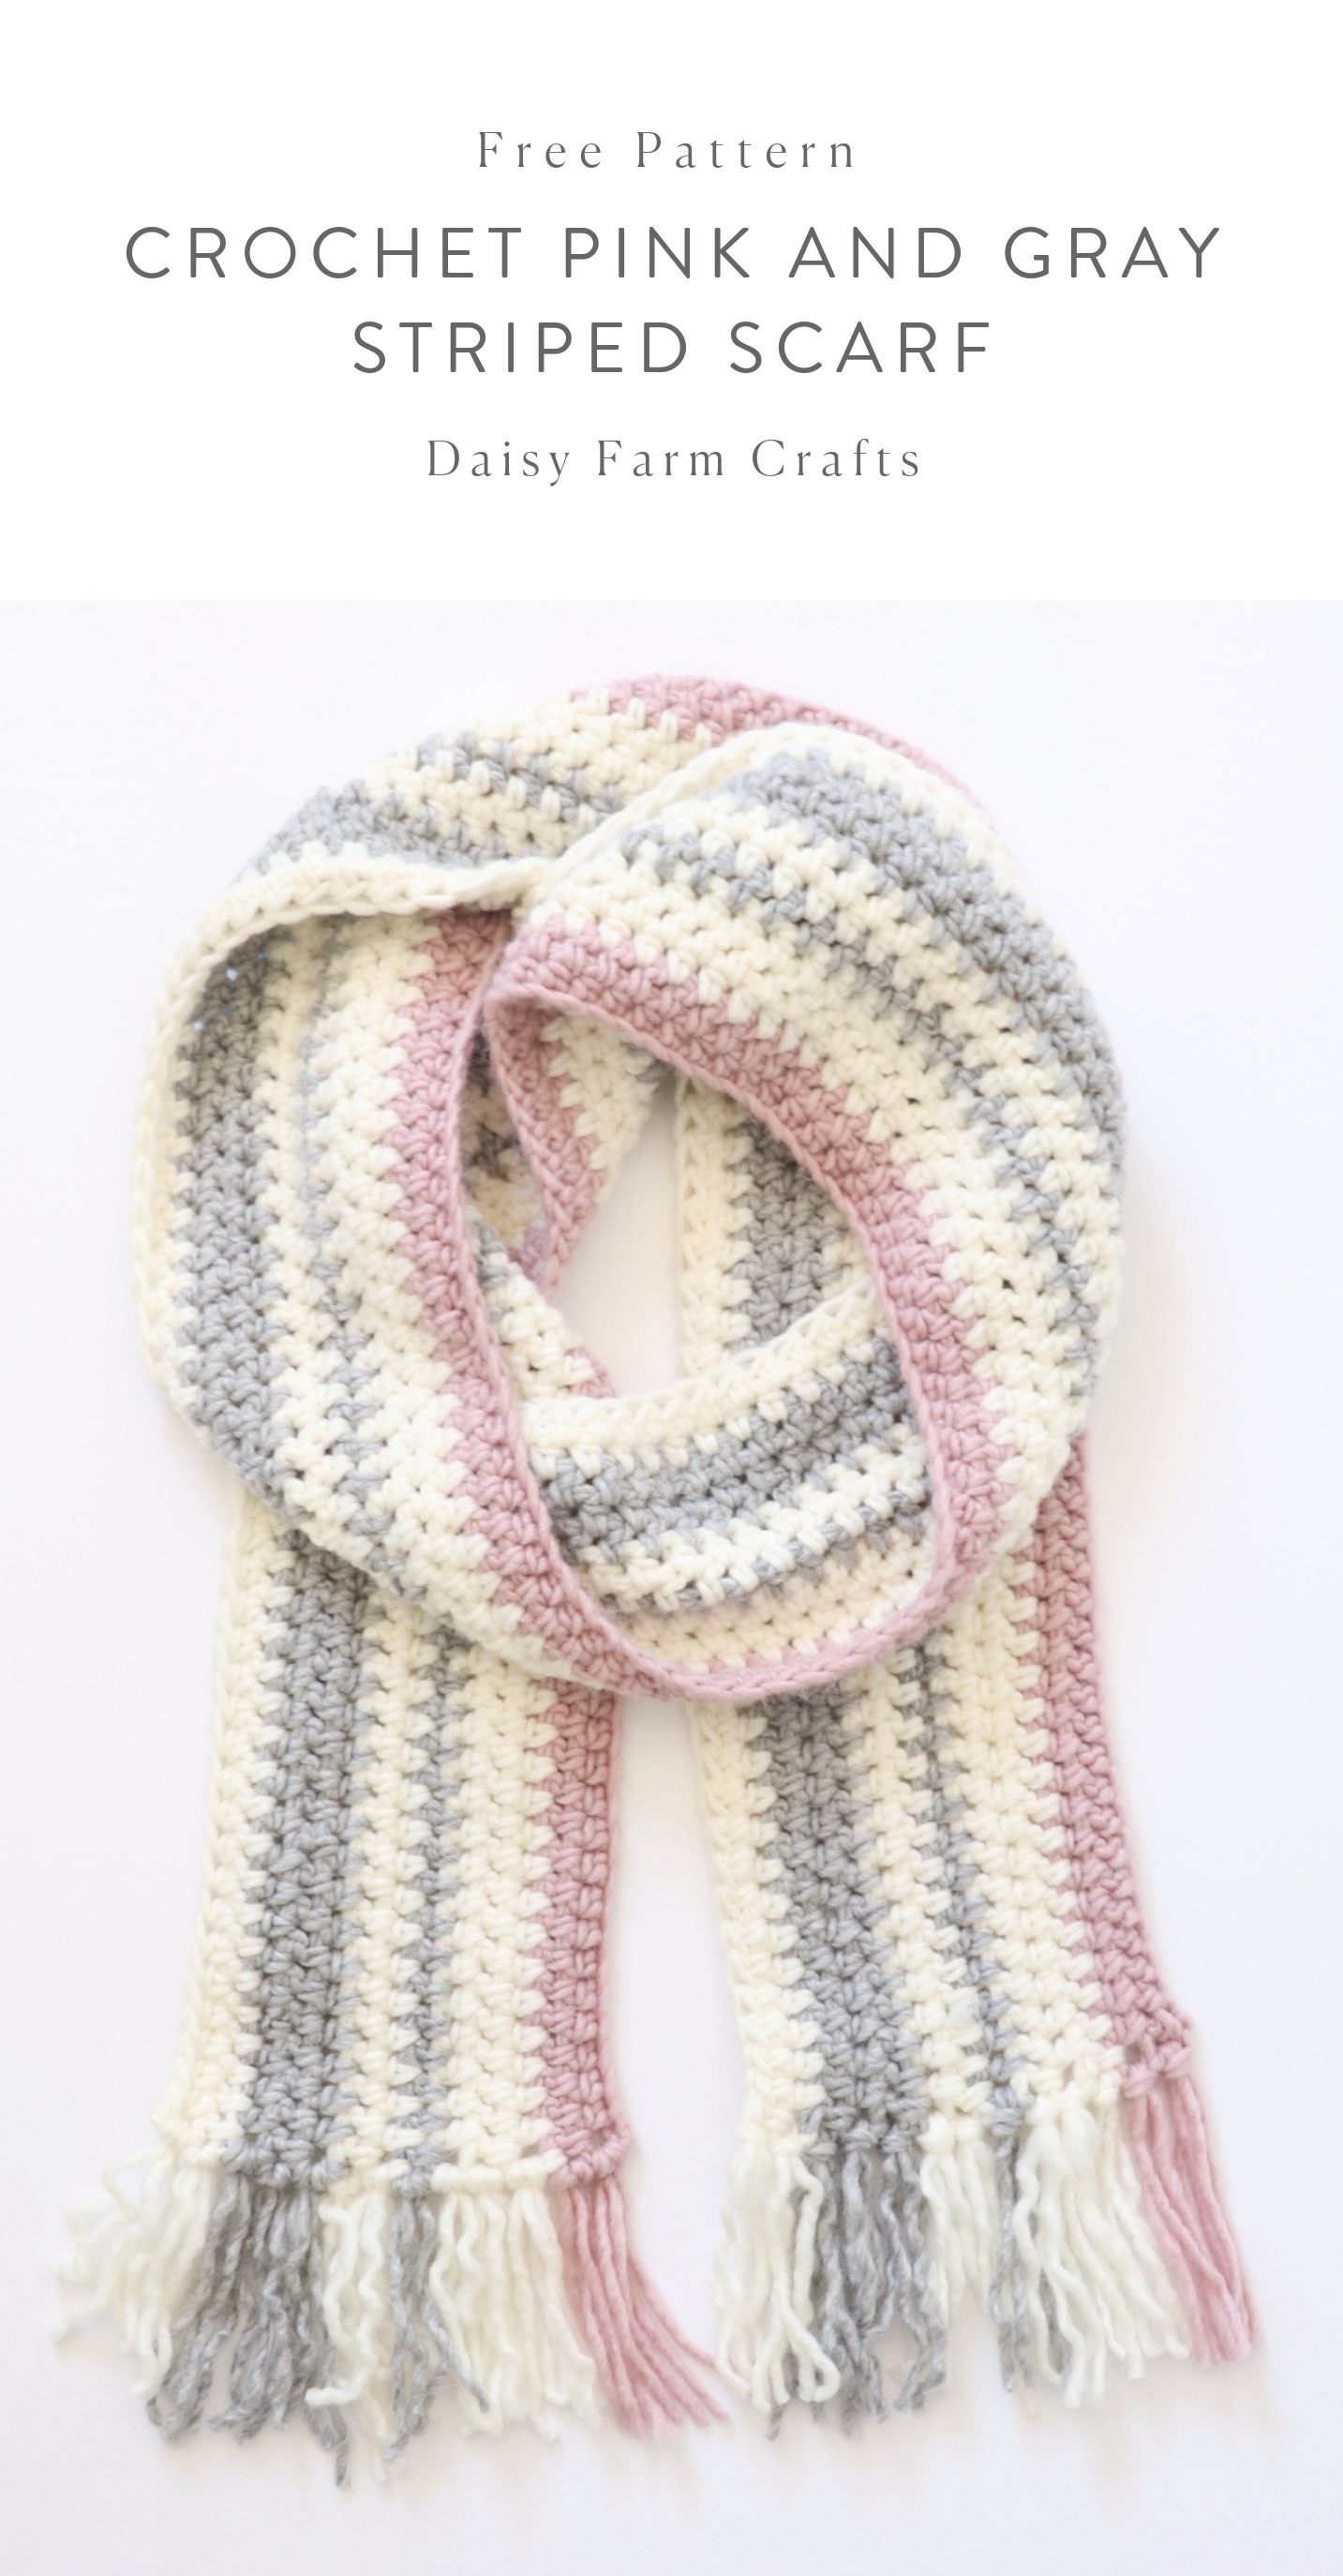 Free Pattern - Crochet Pink and Gray Striped Scarf #crochet ...